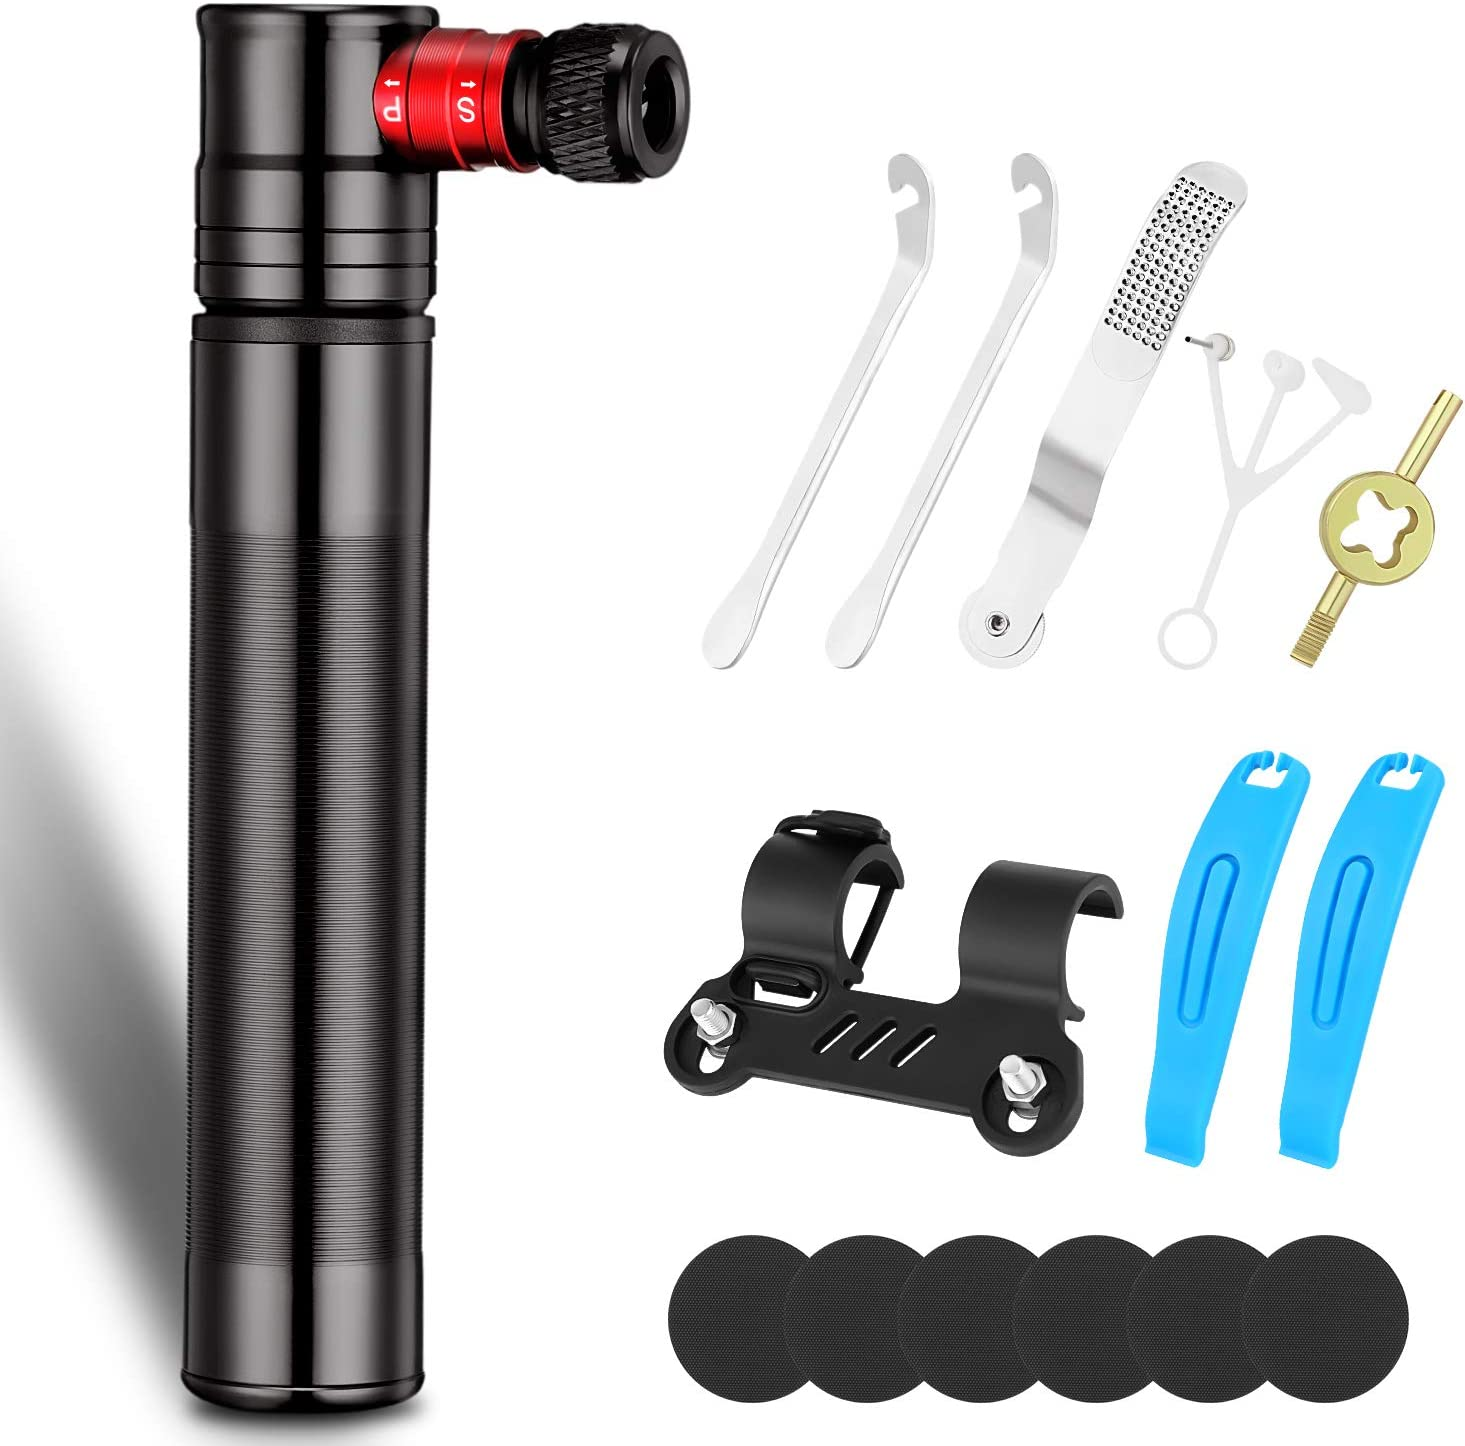 REPAIR KIT BICYCLE 2-WAY MINI BIKE TYRE PUMP